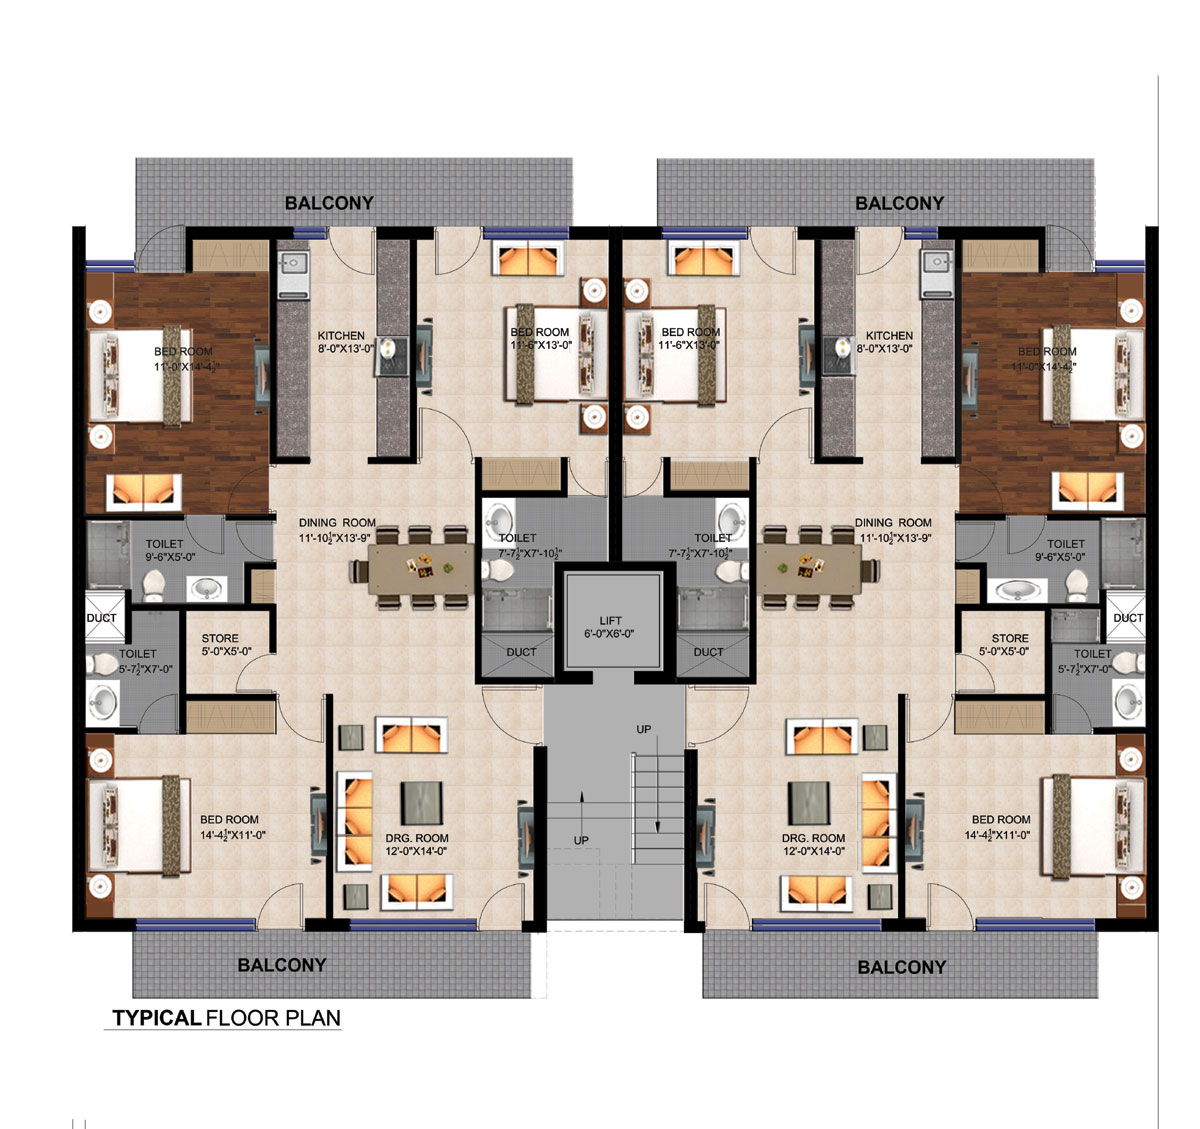 Residential property in mullanpur mullanpur property 4 floor apartment plan